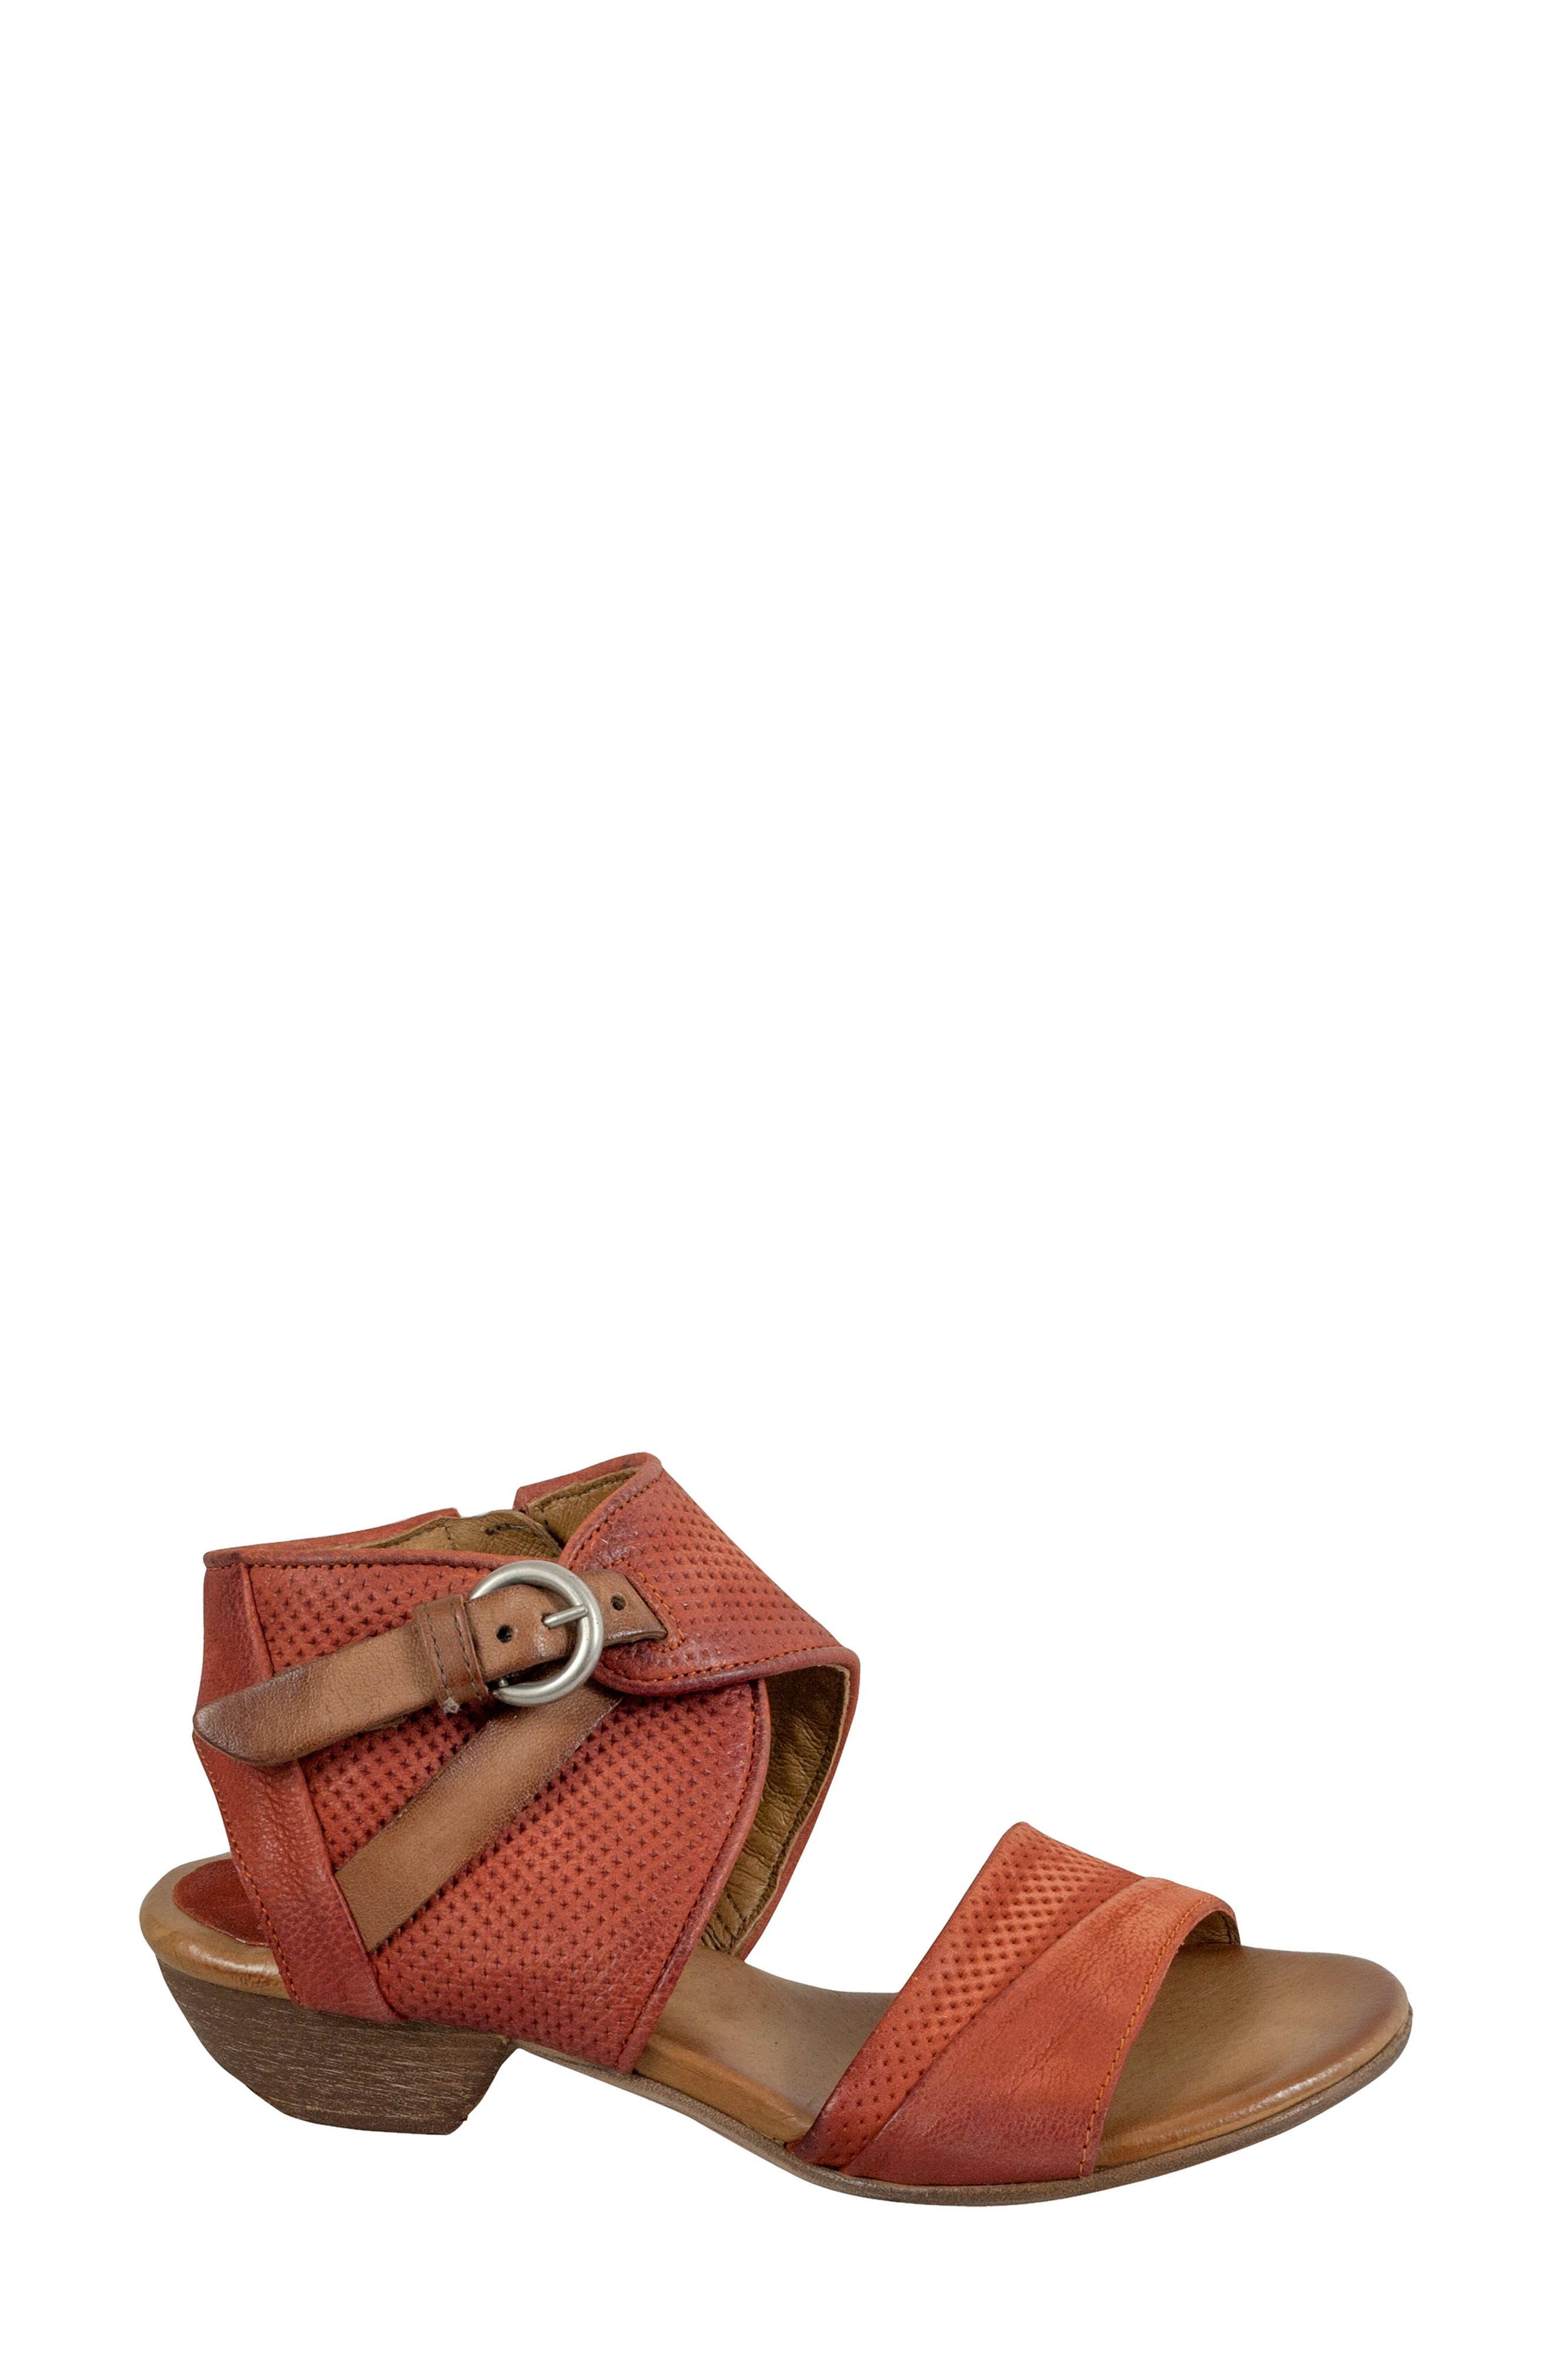 Chatham Textured Sandal,                             Alternate thumbnail 3, color,                             Rust Leather